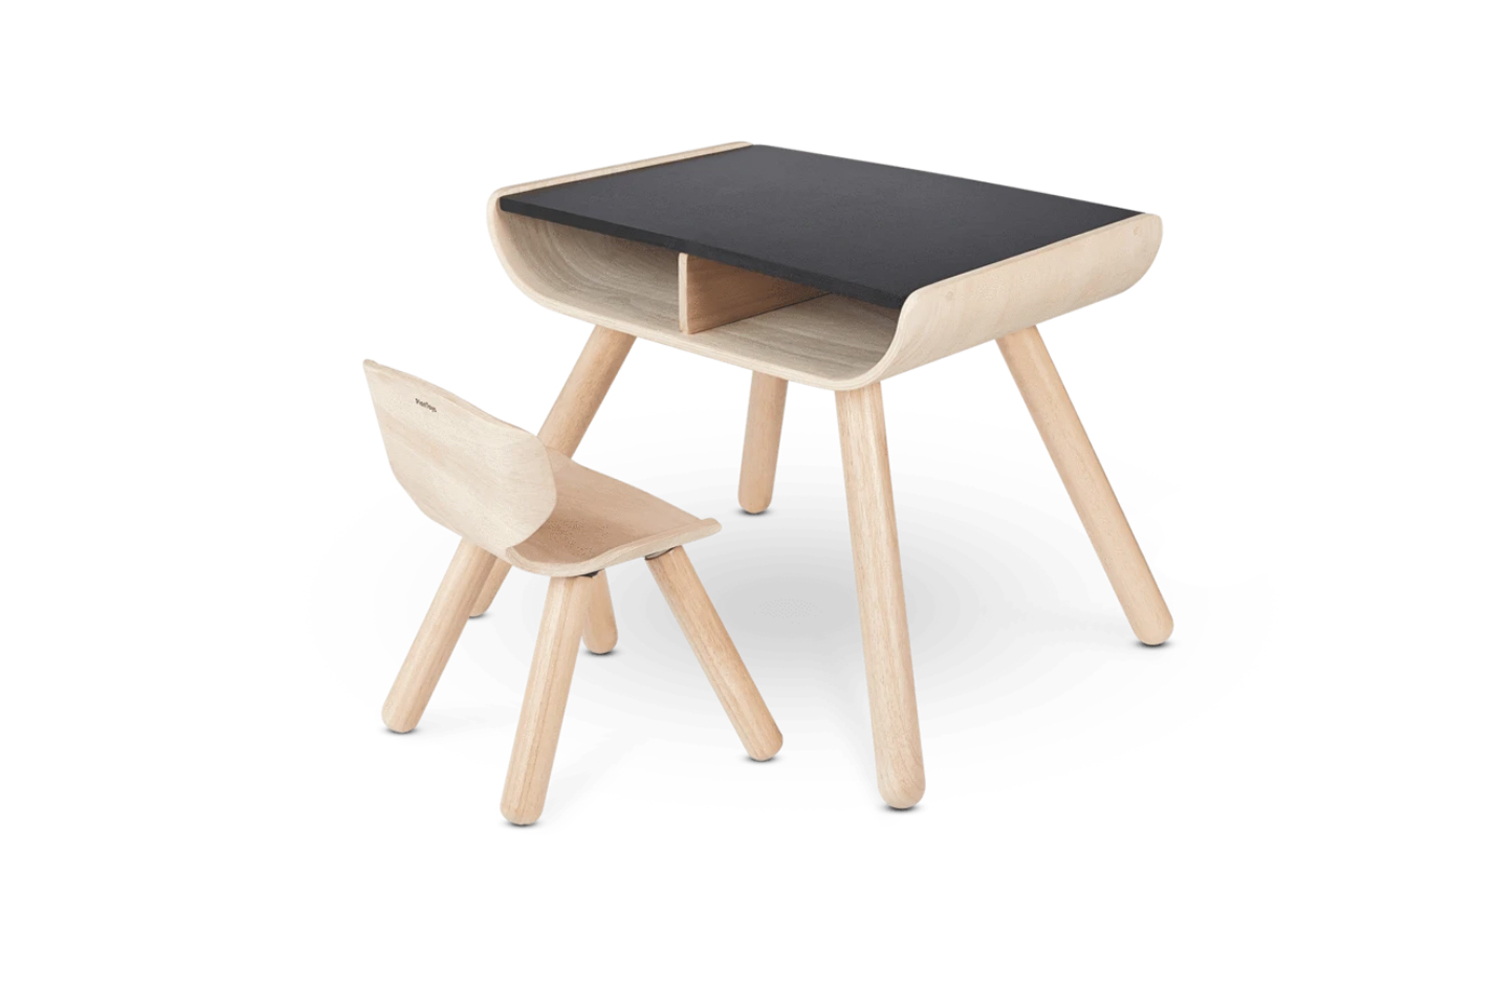 From PlanToys, the Table and Chair in Black is $0 at Burke Decor.